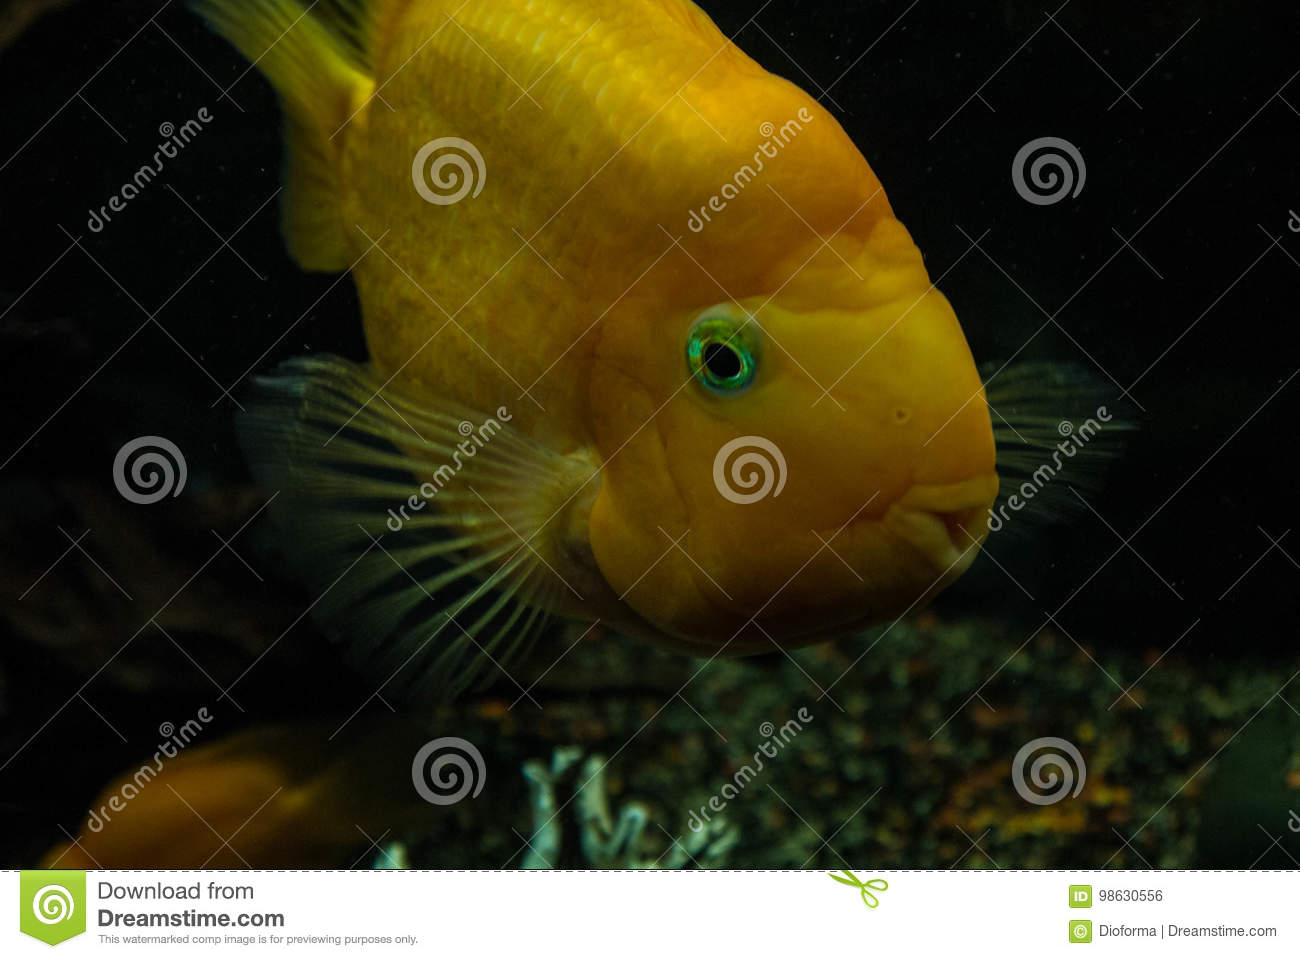 red parrot cichlid stock photo image of abstract goldfish 98630556